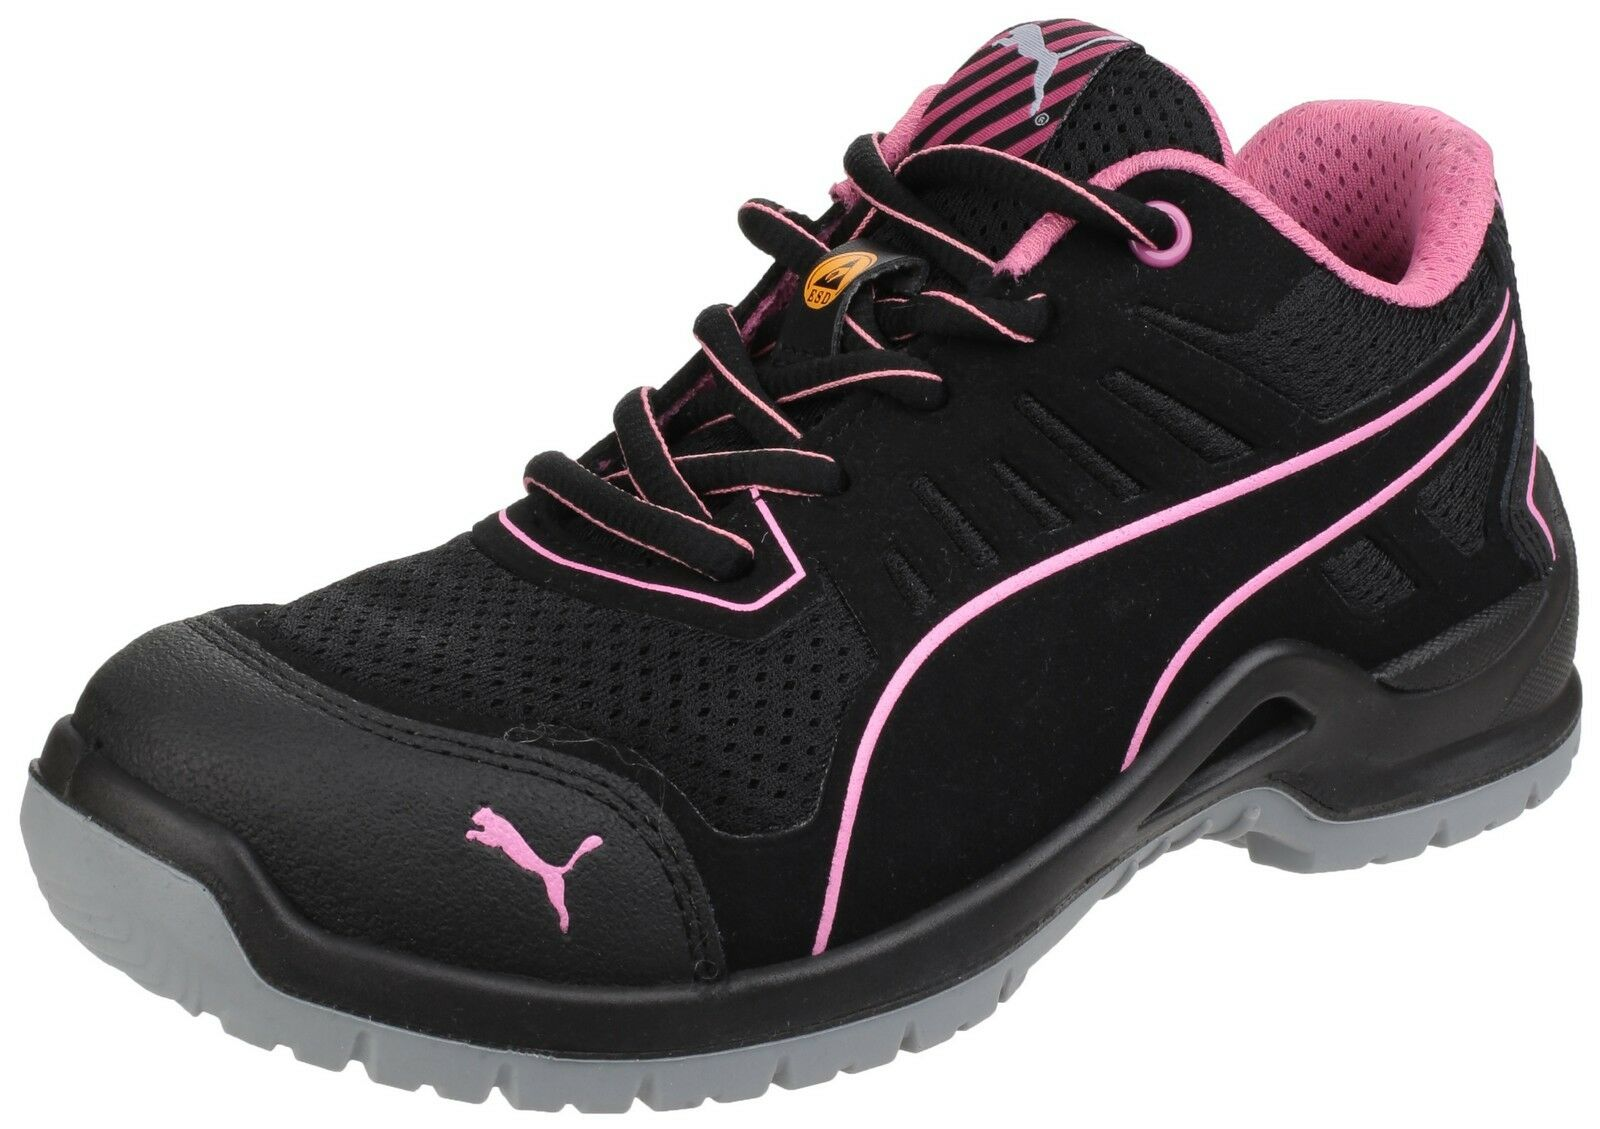 Details about Puma Fuse TC Pink Low Safety Womens Industrial Work Trainers Shoes UK3 8